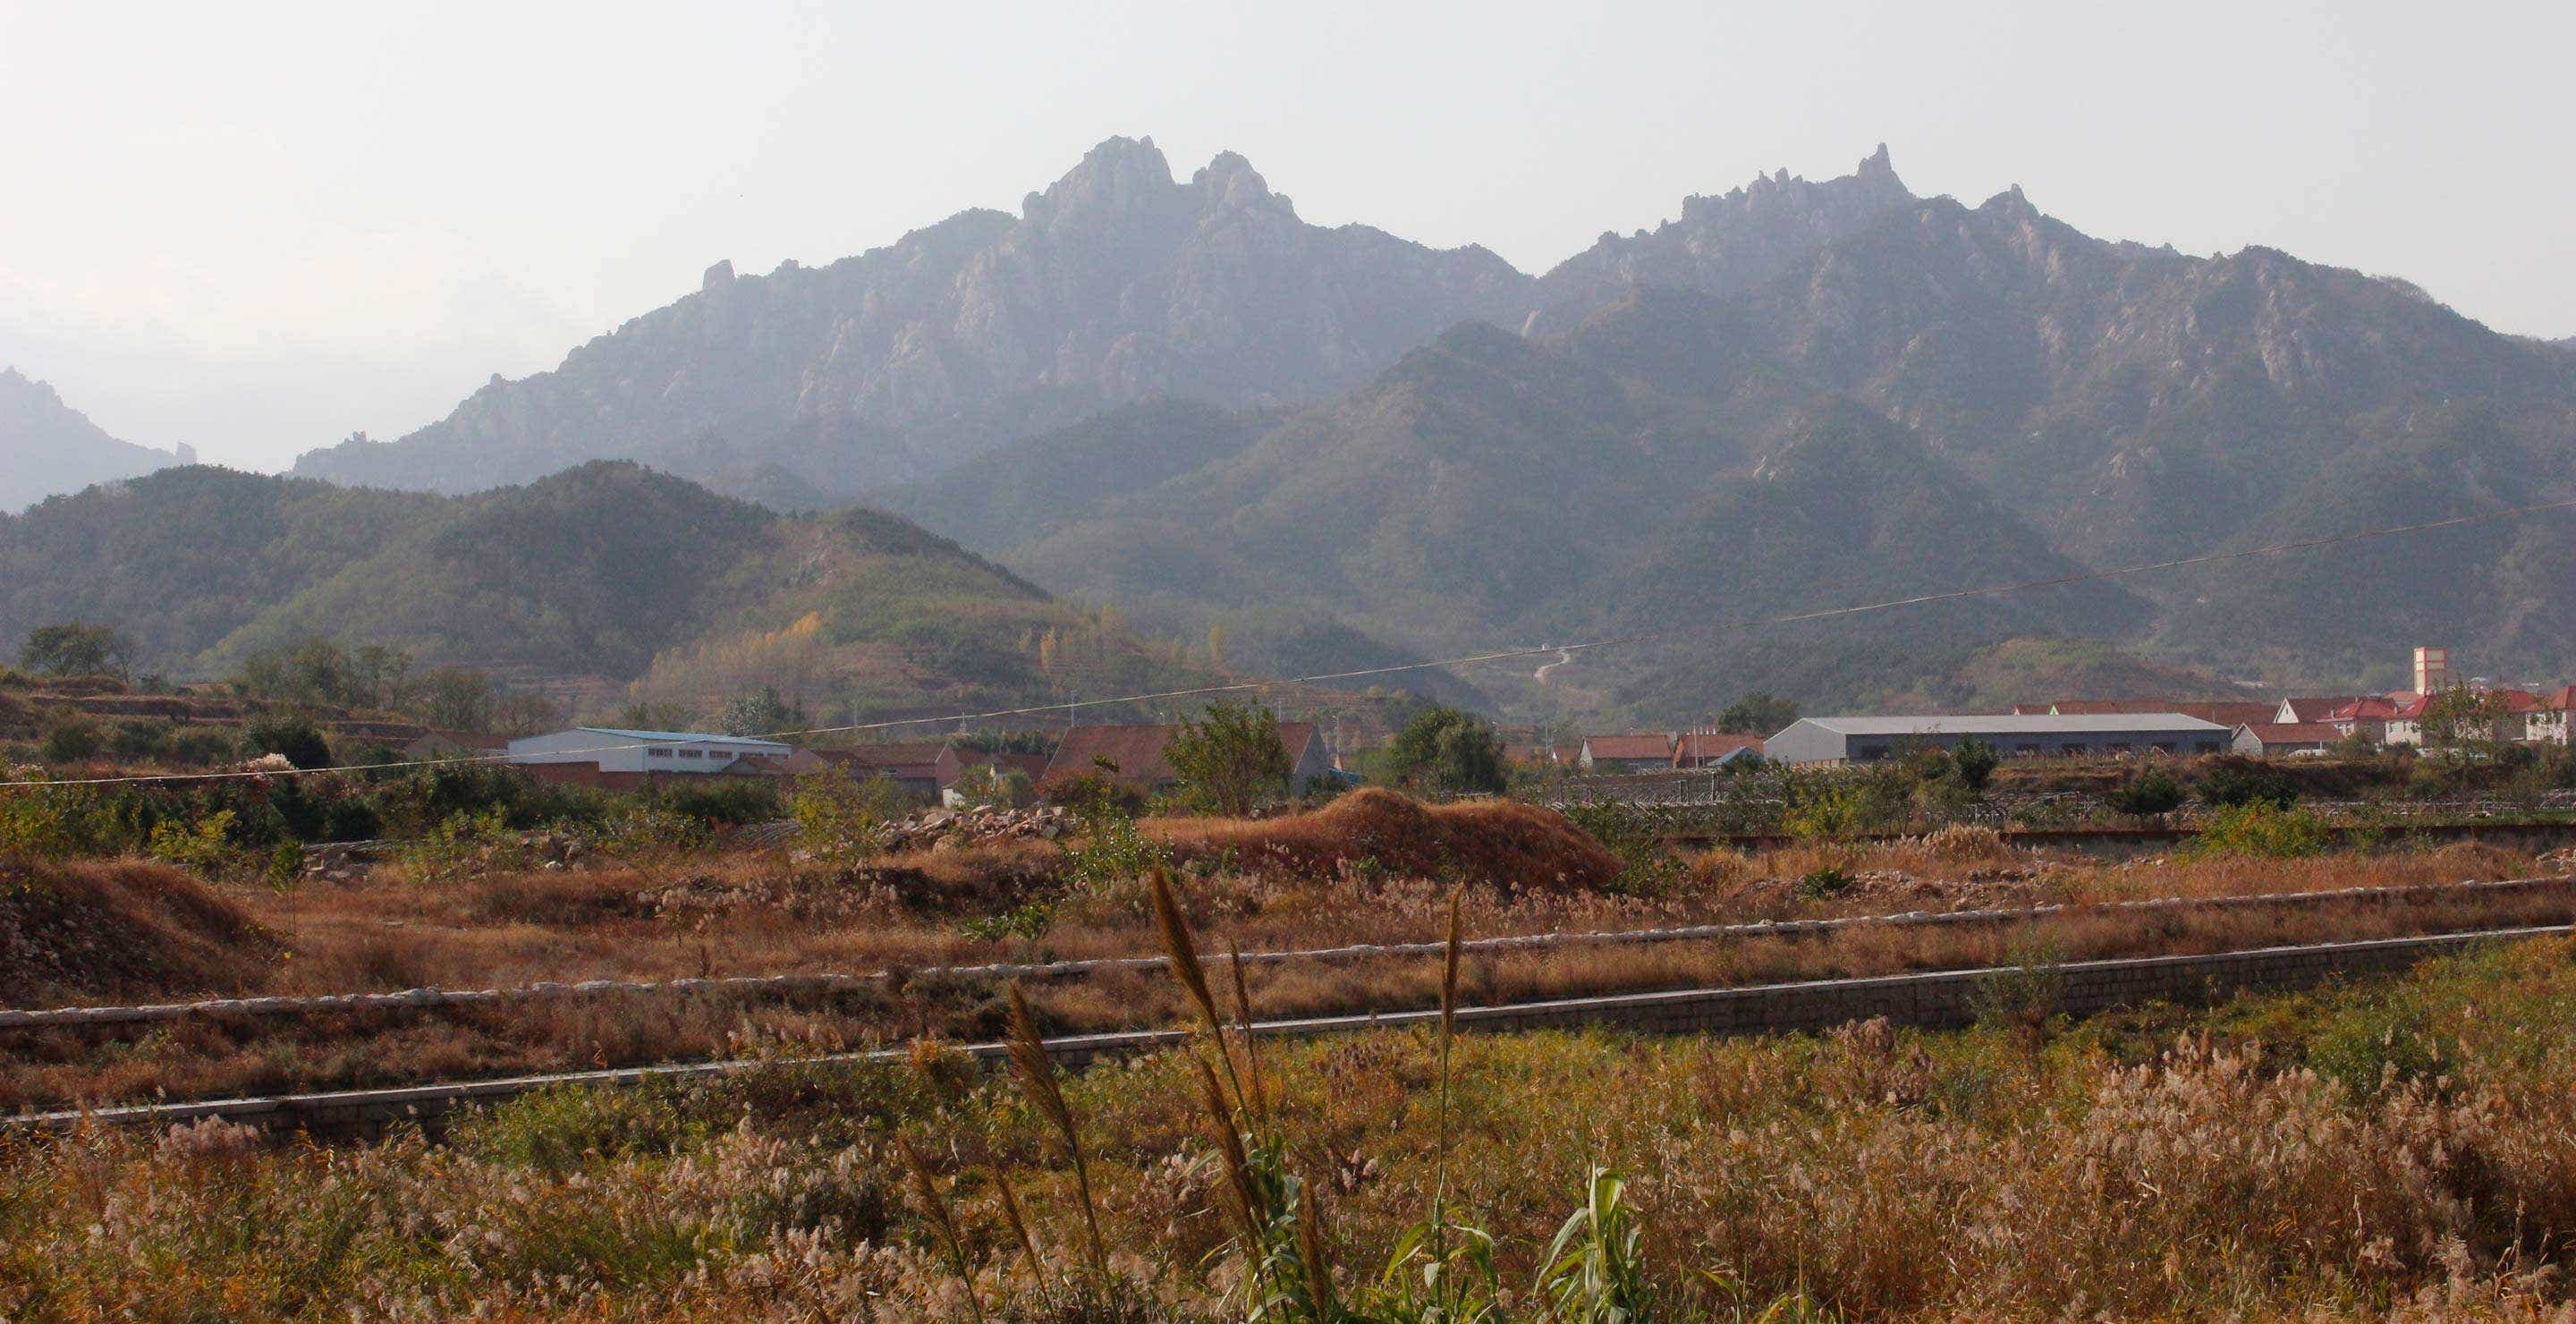 View of the mountain range from the He Family's workshop